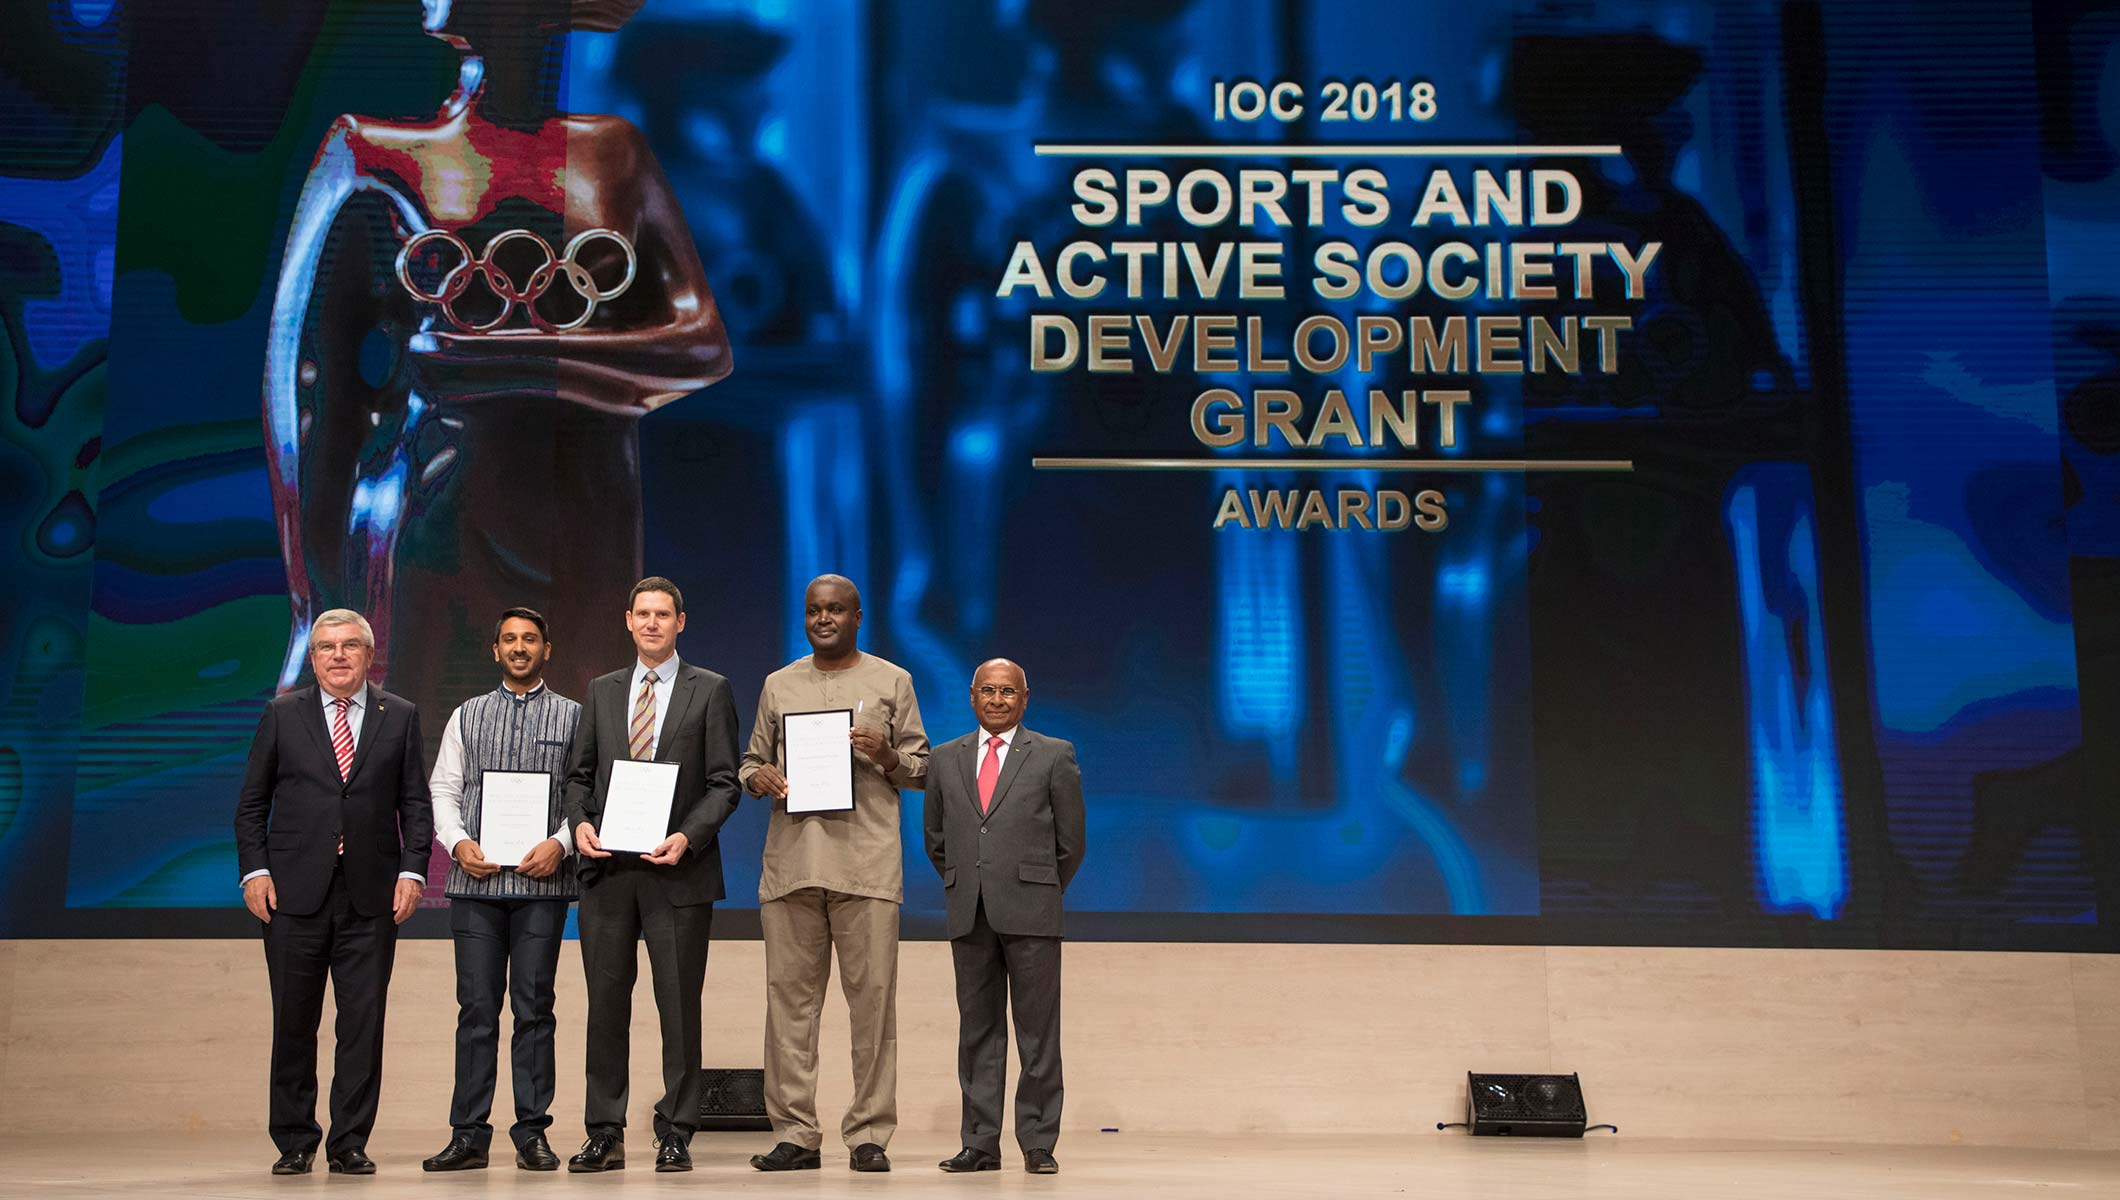 APPLICATIONS FOR THE SPORT AND ACTIVE SOCIETY DEVELOPMENT GRANTS ARE NOW OPEN